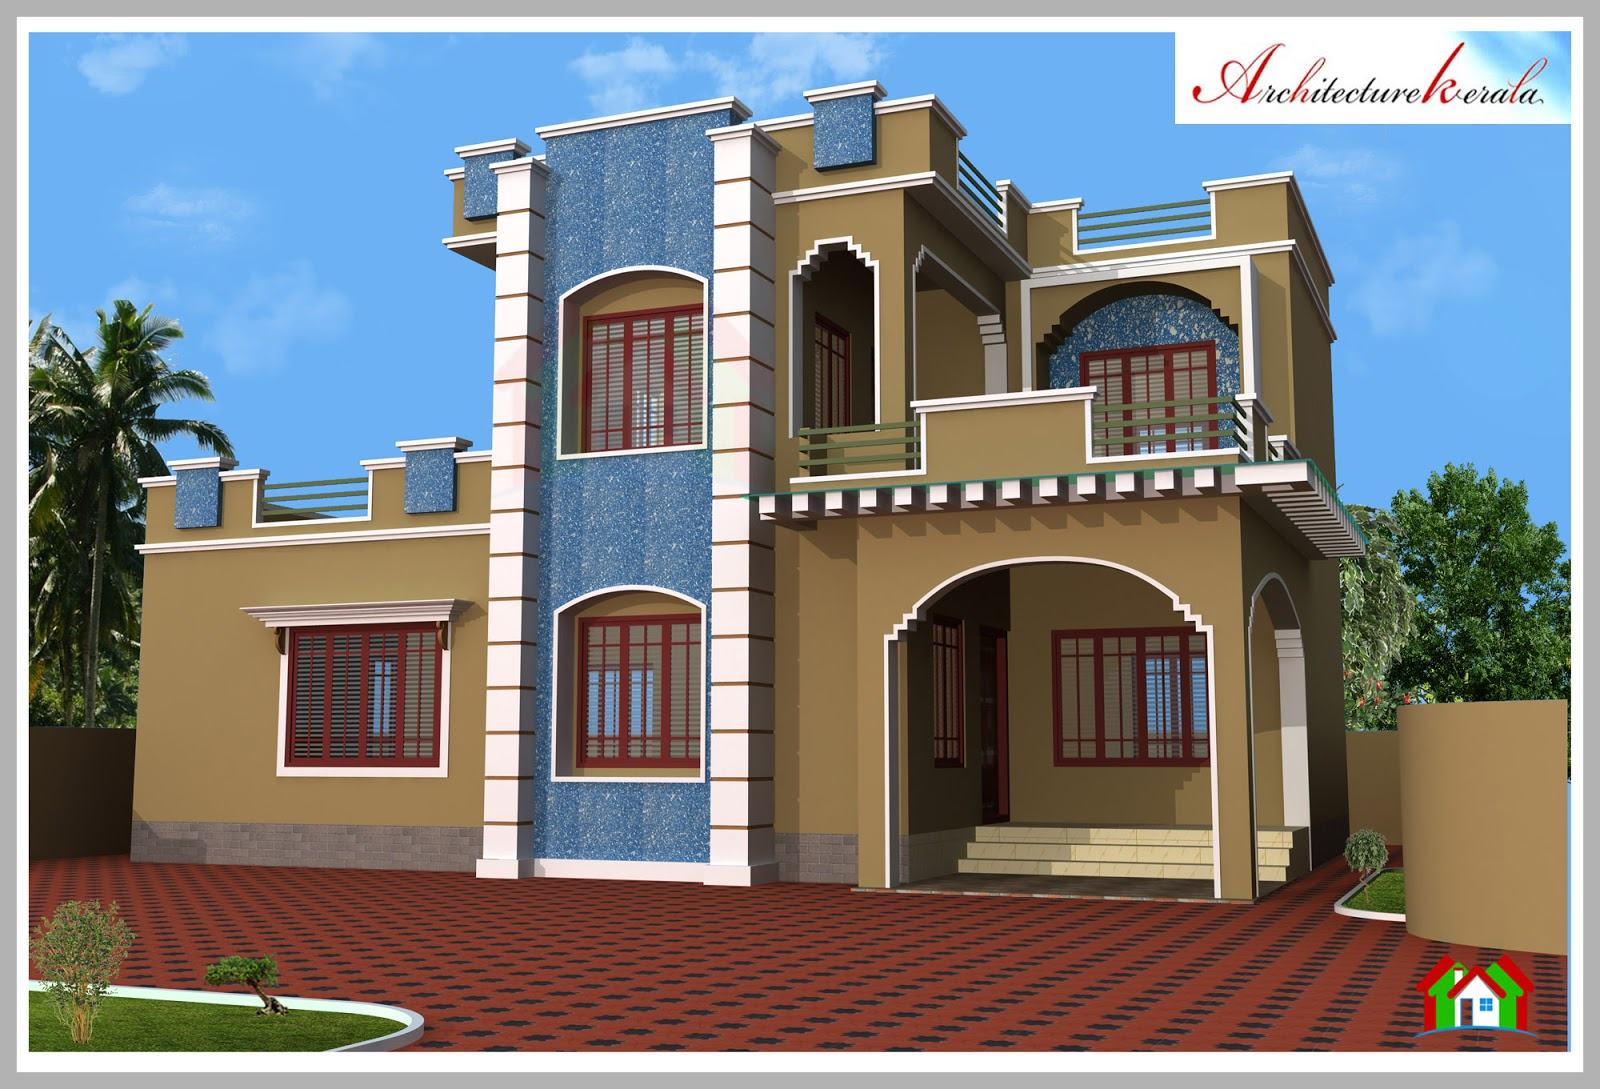 Ground Floor Building Elevation Images : Architecture kerala d elevation and floor plan